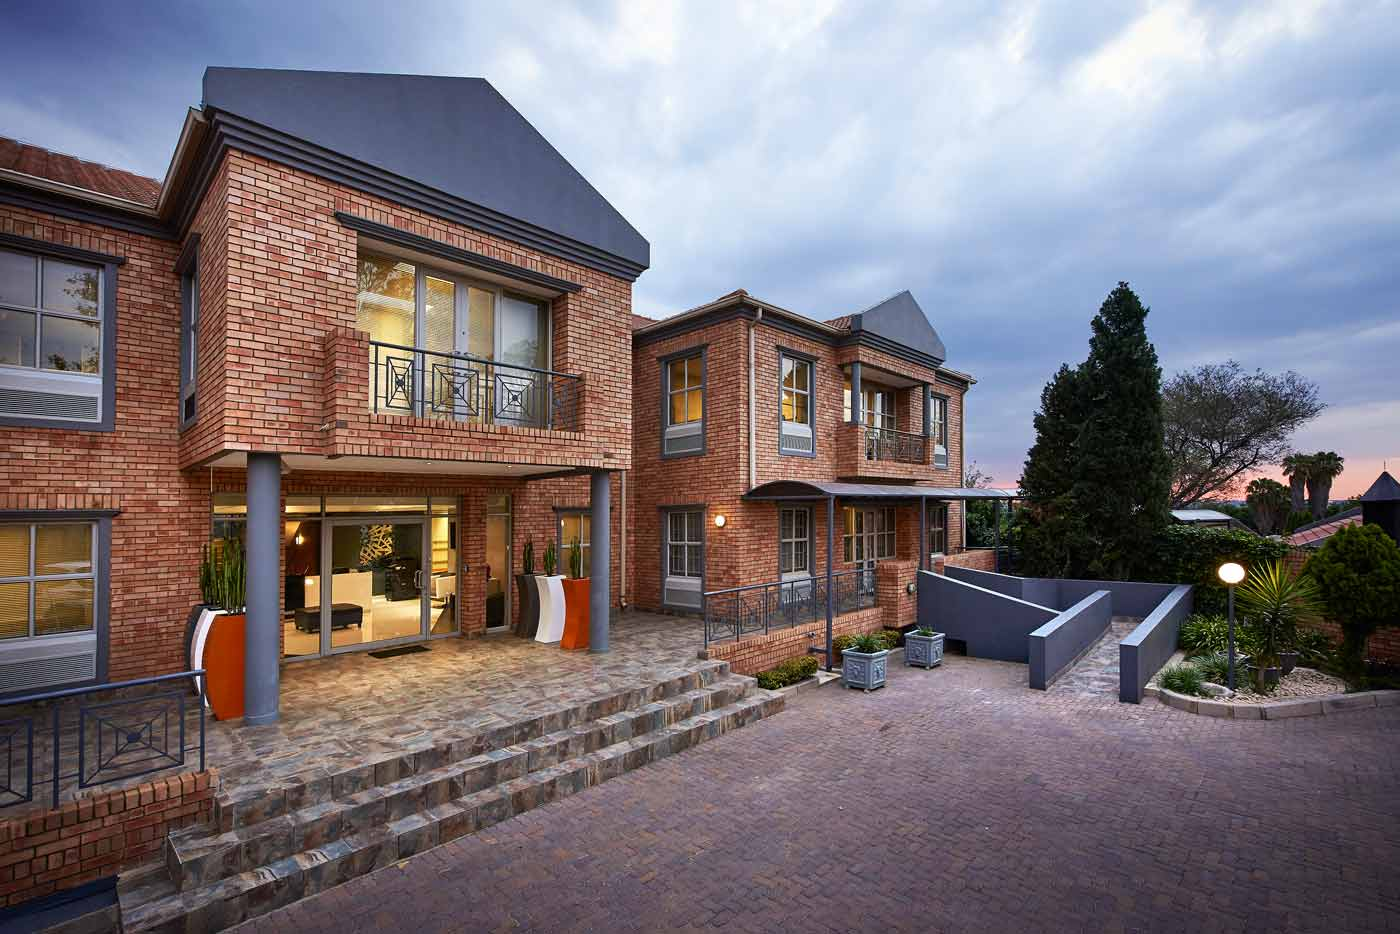 Office space to rent in Sunninghill - The Workspace Sunninghill